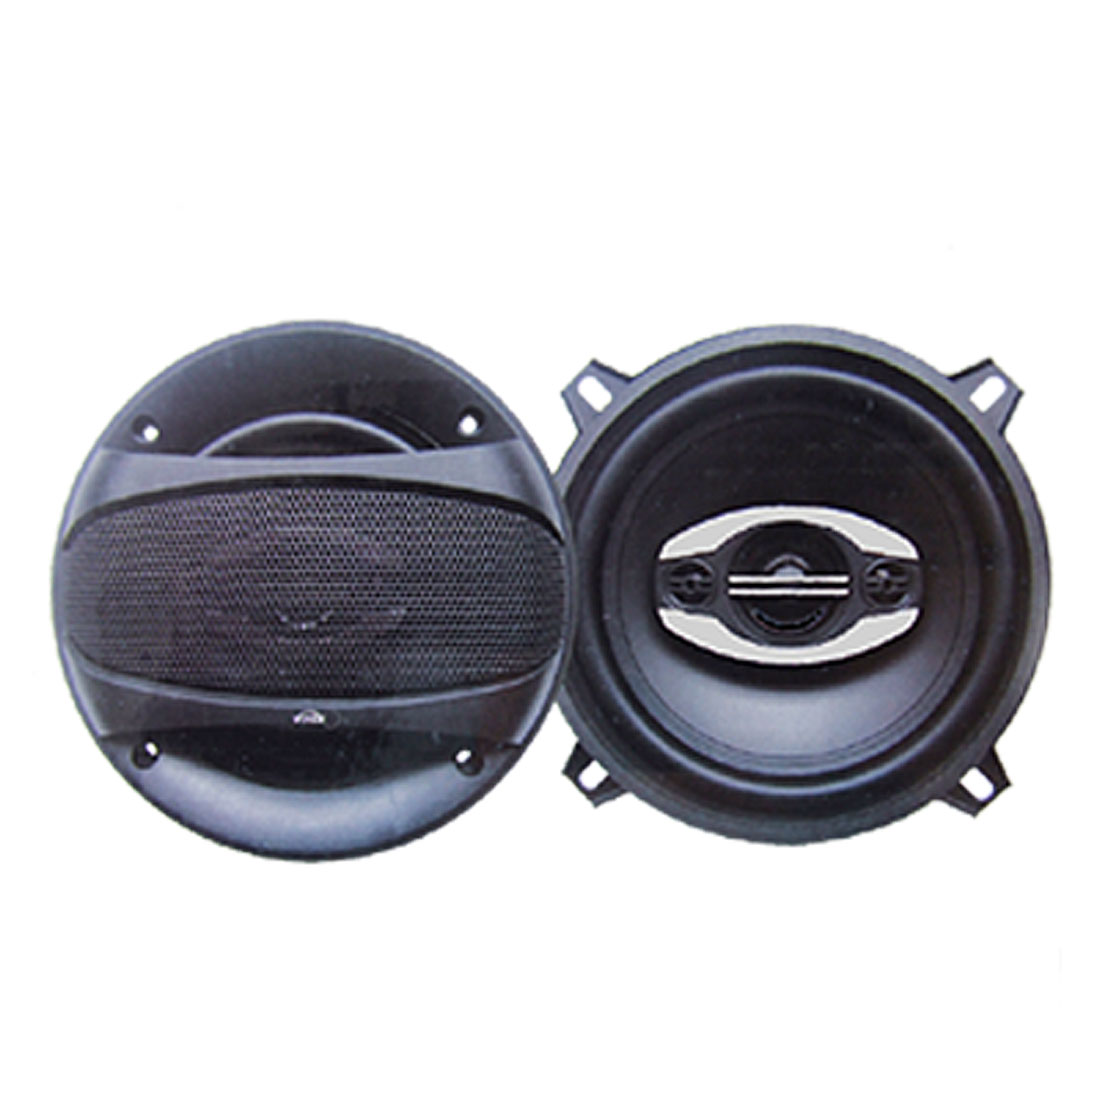 30 Watt 2 Way Black Car Auto Stereo Audio System Speakers 2 PCS